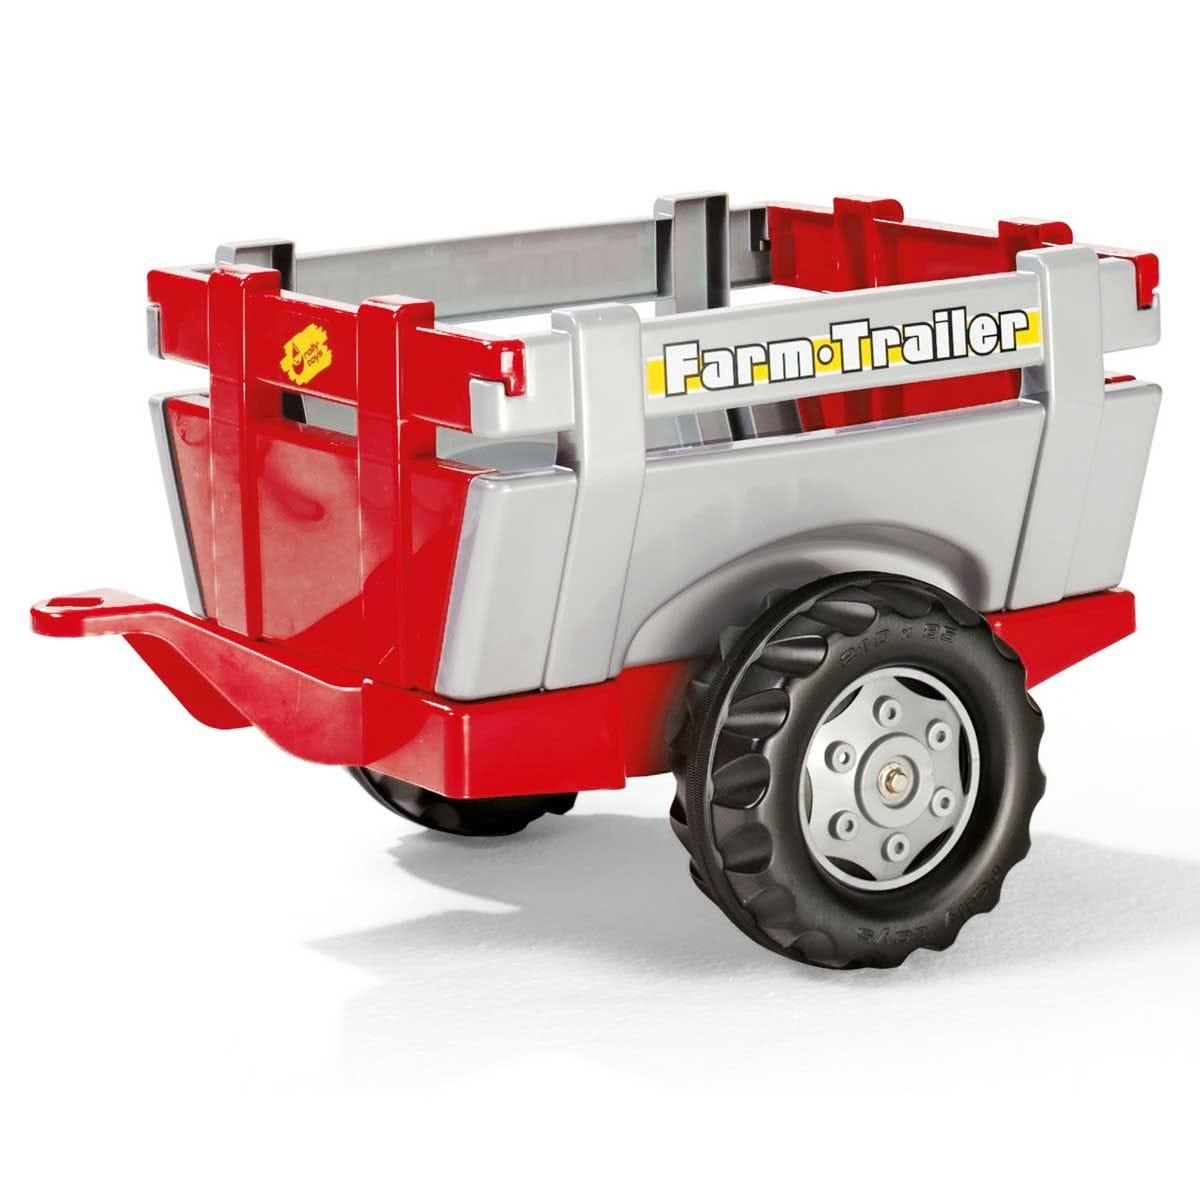 Rolly Farm Trailer for Kid's Ride-On Tractors - Red/Silver